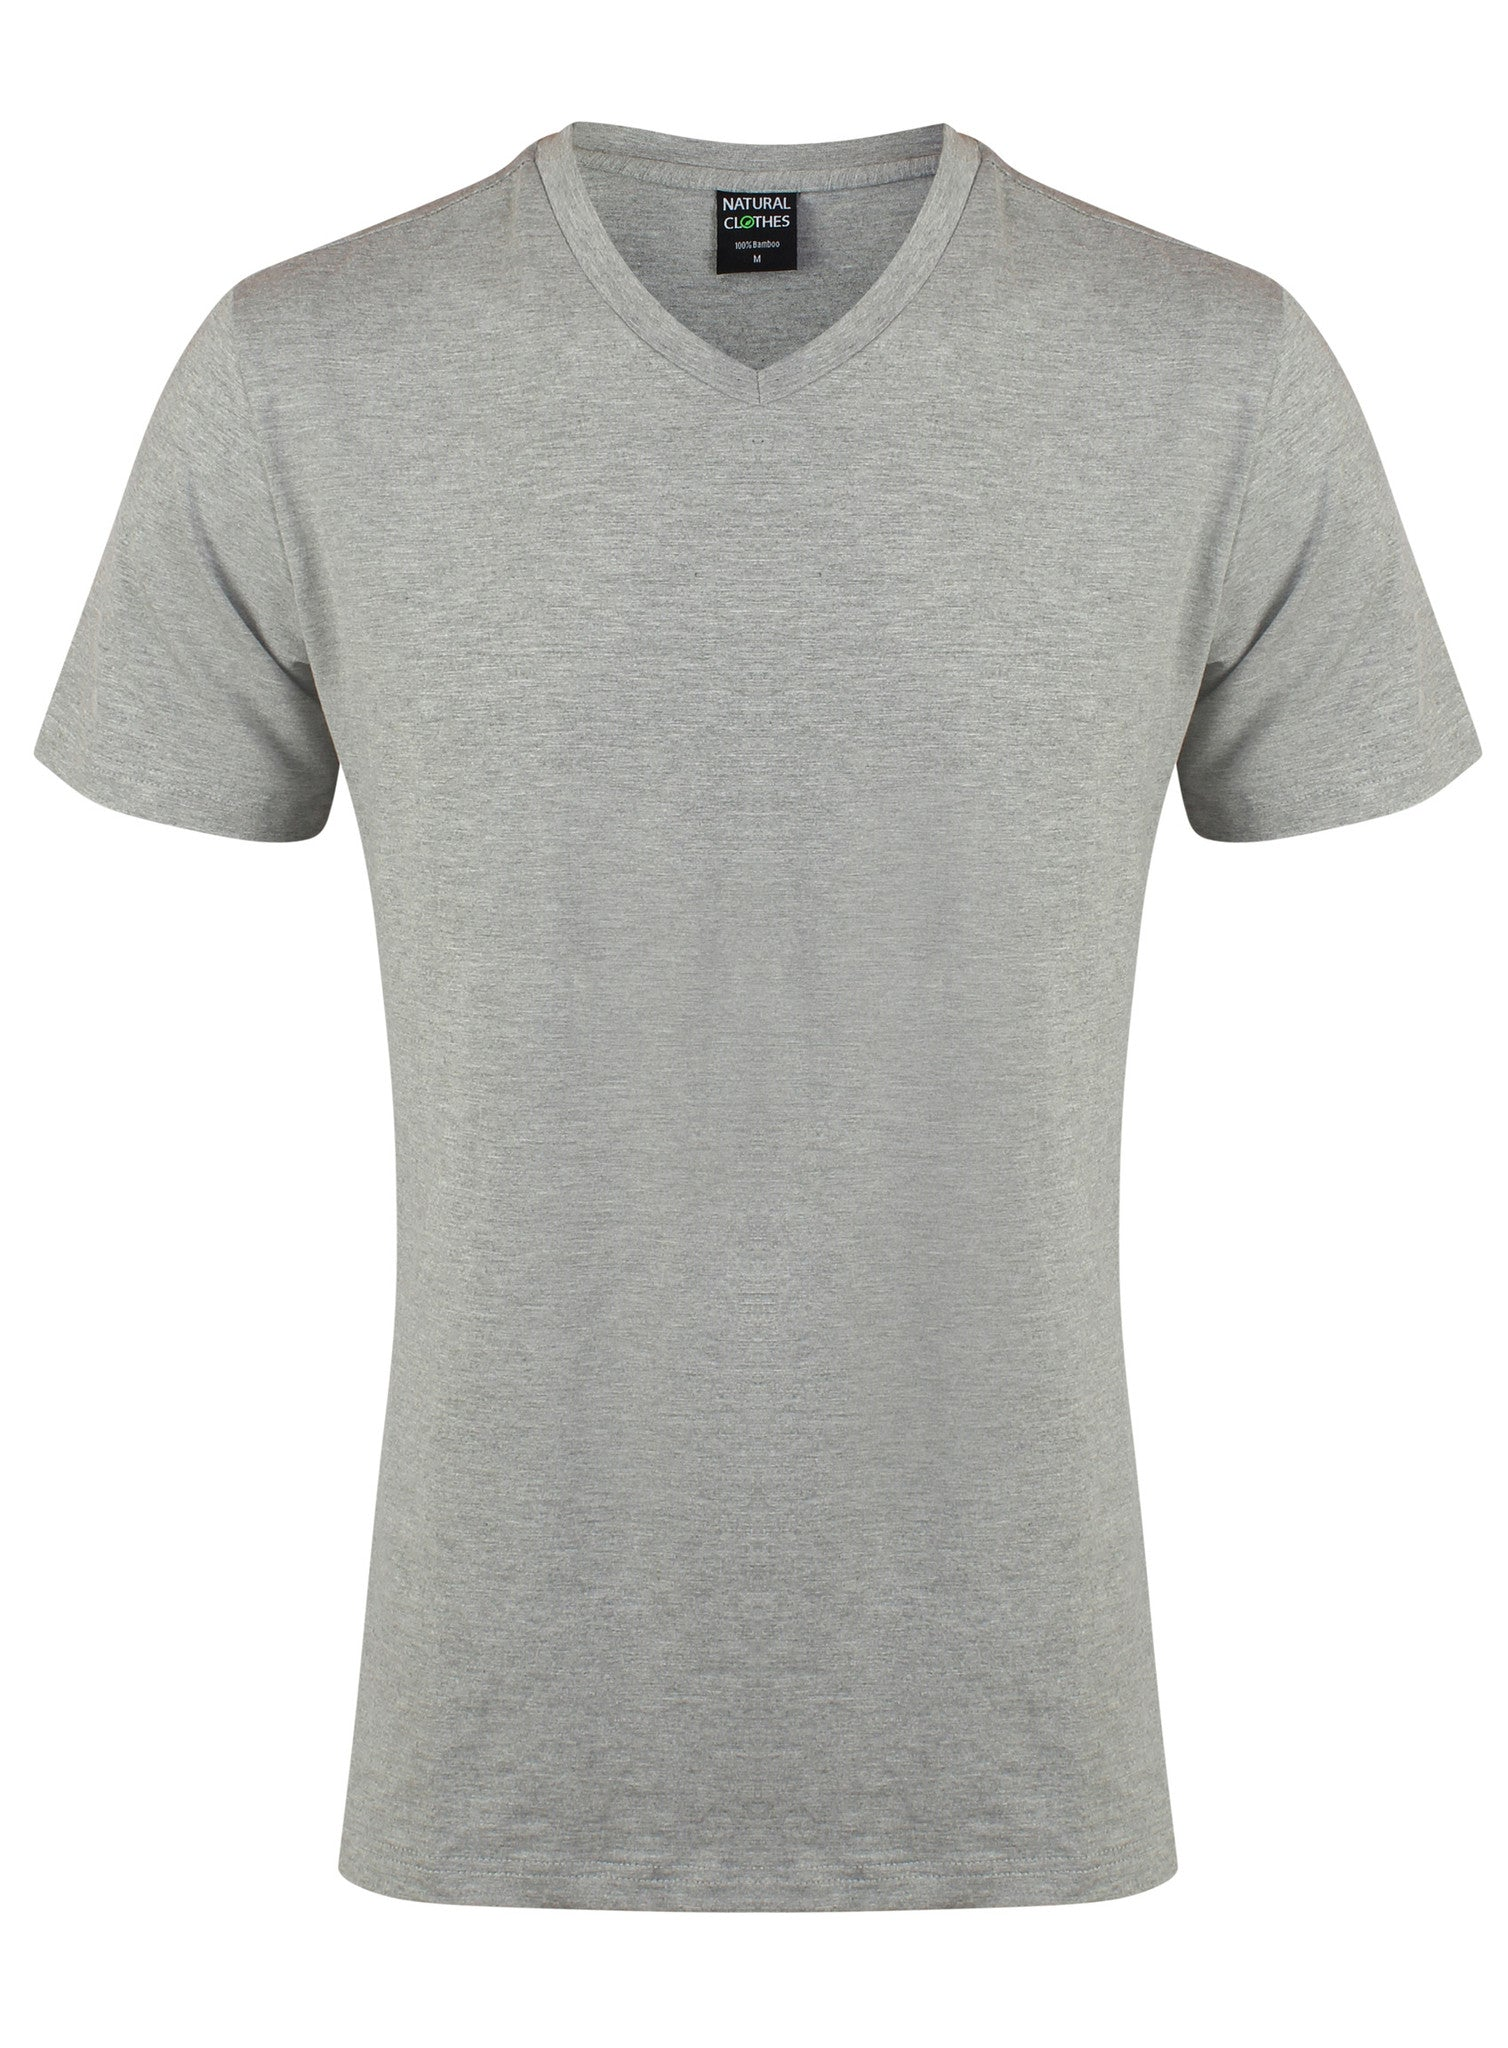 Bamboo T-Shirt V-Neck Regular Fit Grey - Natural Clothes Bamboo Clothing & Accessories for Men & Women